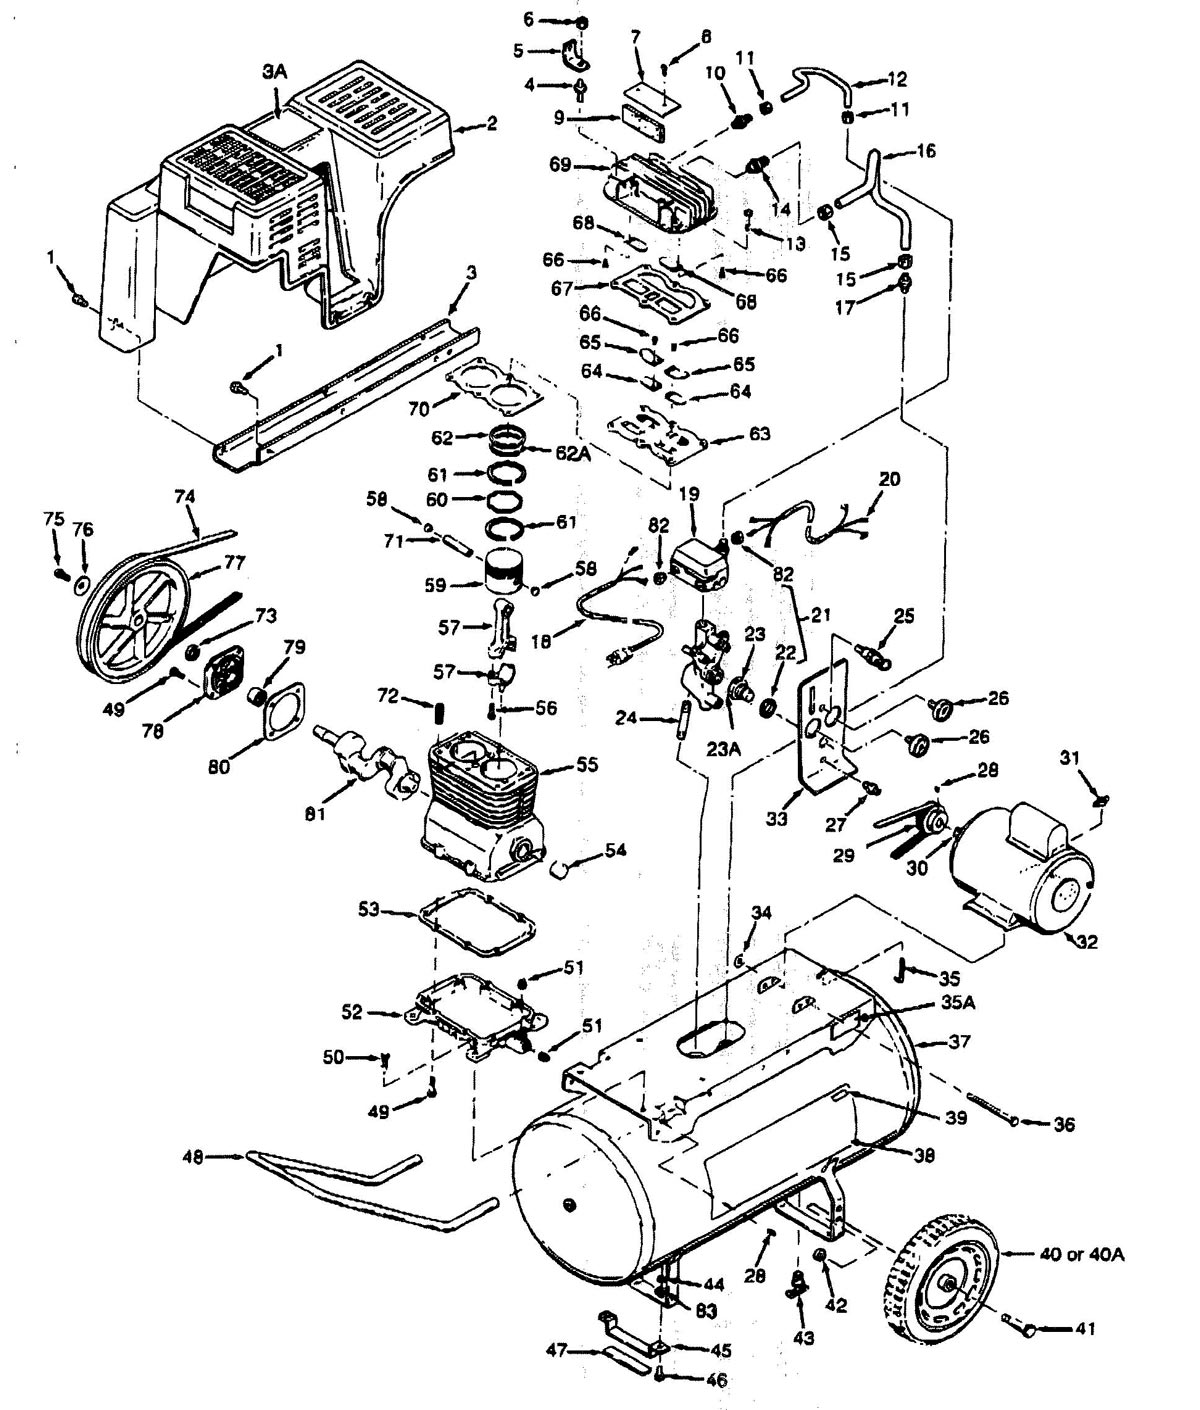 wiring diagram for a 120 volt pressure switch with Craftsman Air Pressor Motor Wiring Diagram on Single Phase 120 240 Motor Wiring Diagram likewise Dpdt Switch Wiring Diagram 110 Volts together with 220 Volt Forward Reverse Switch Wiring Diagram additionally 30   Plug Diagram Wiring Diagrams in addition Wiring Diagram 120v.